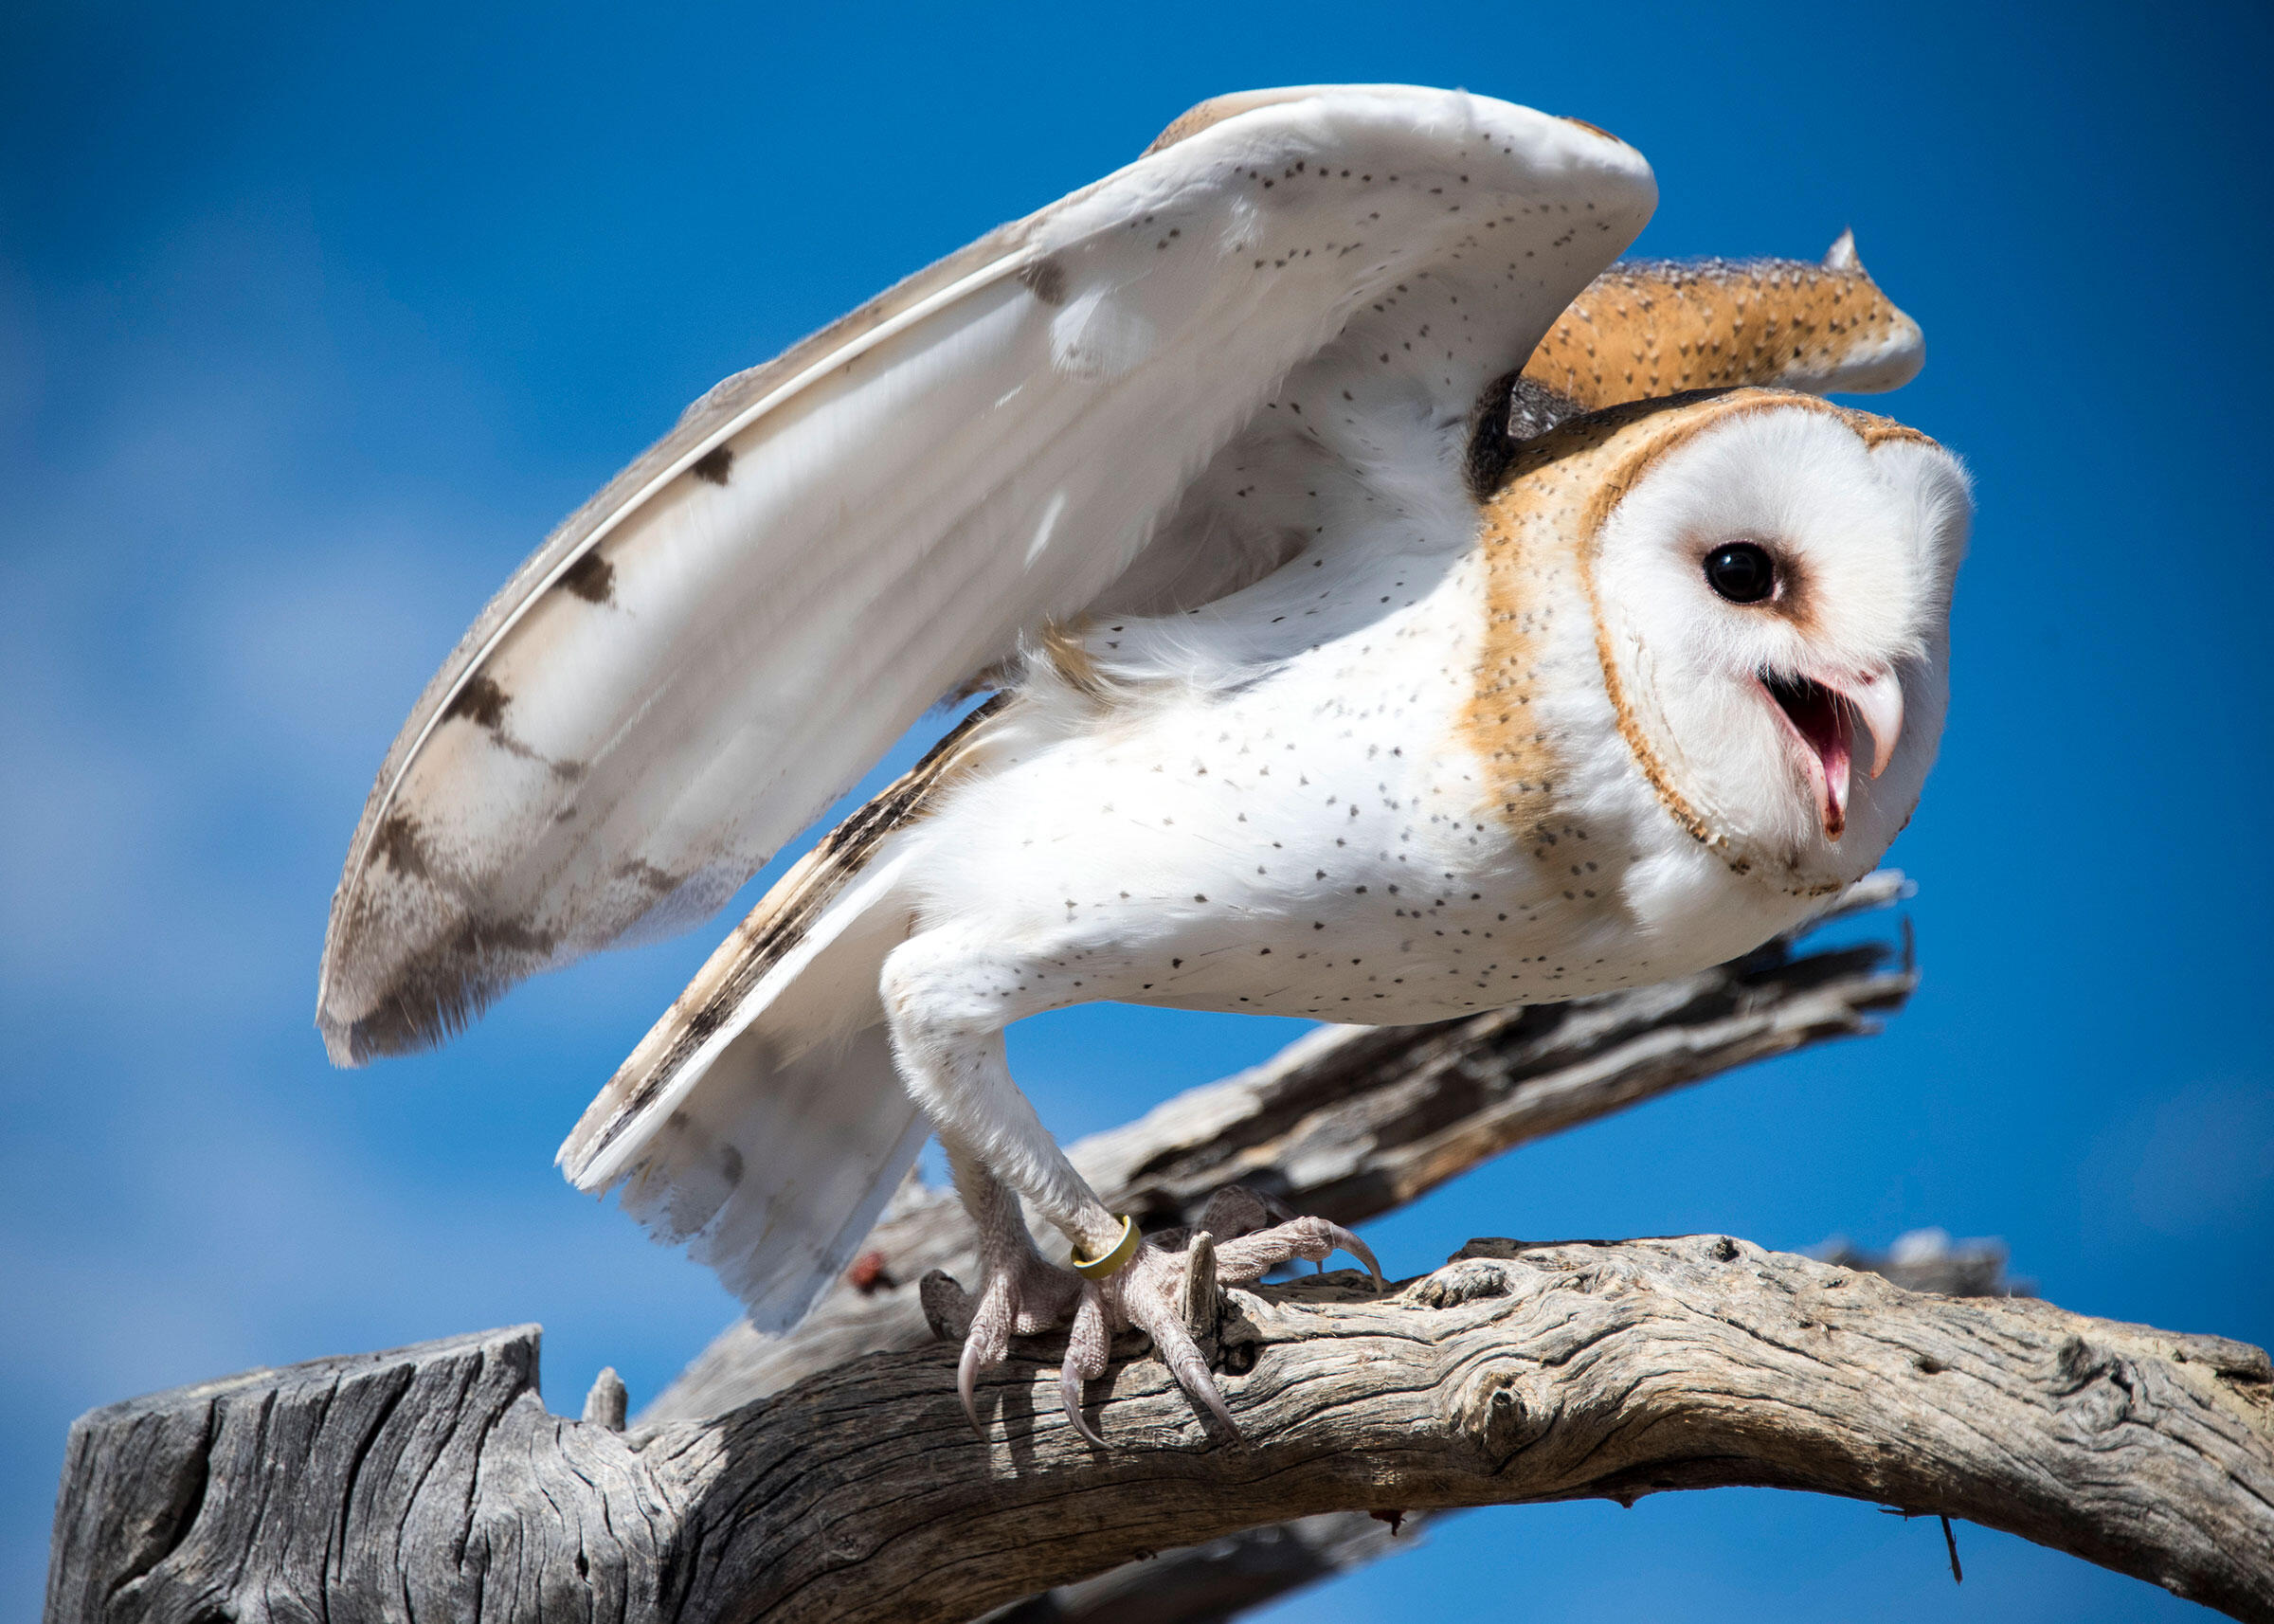 Barn Owl | Audubon Field Guide